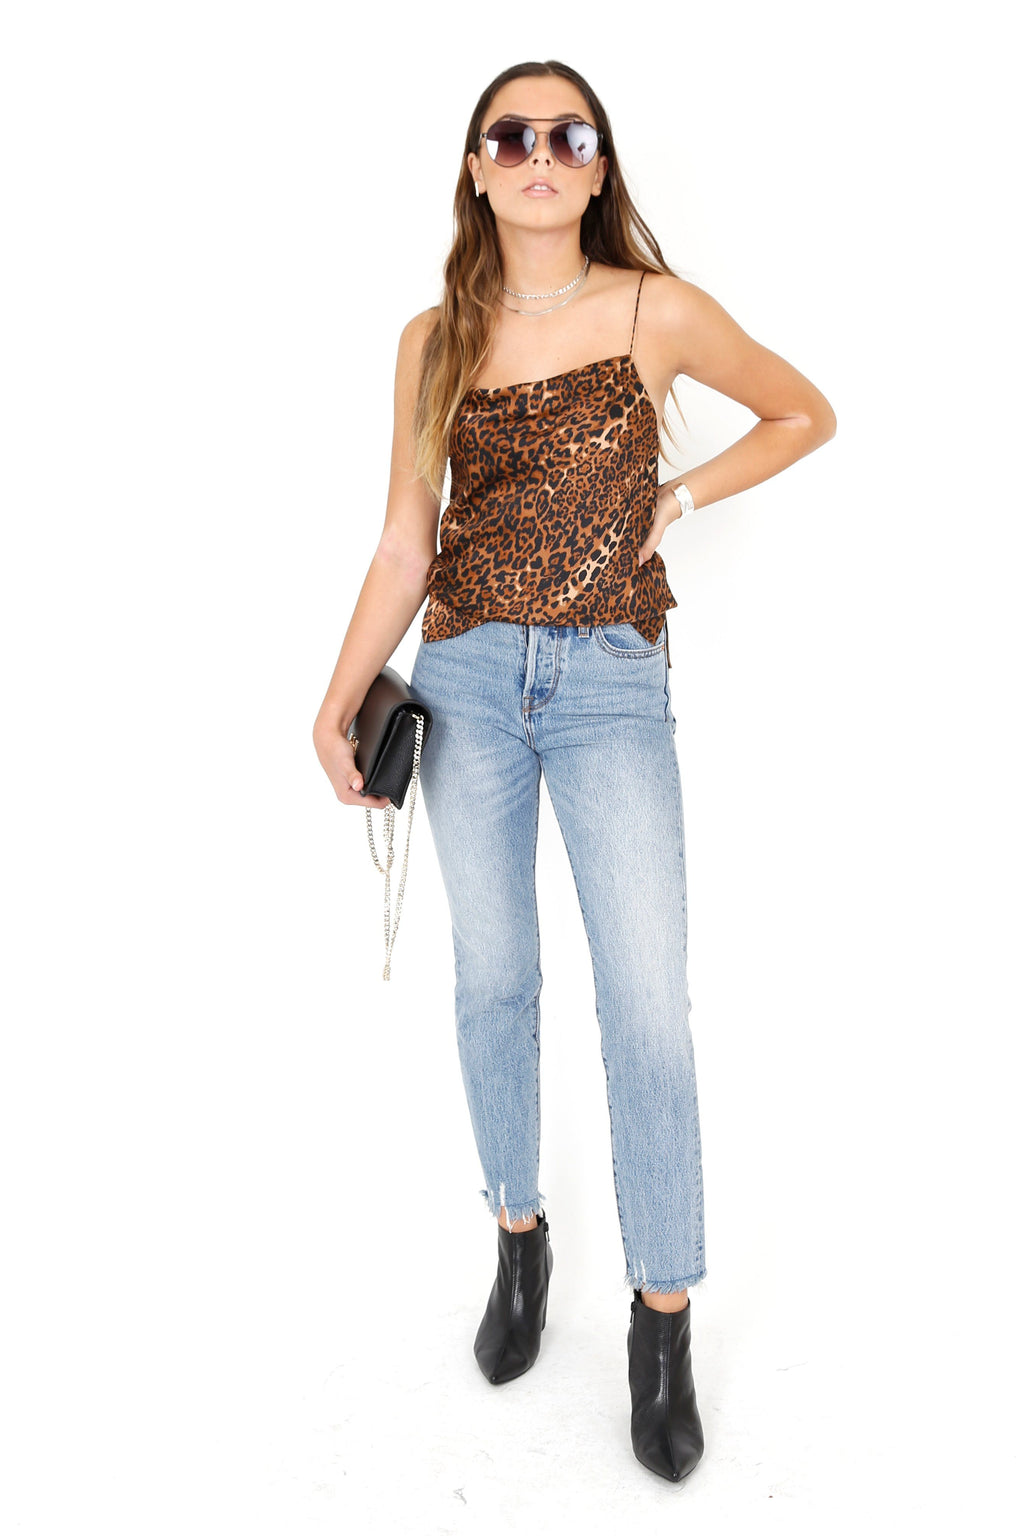 CAMI NYC | Axel Silk Camisole - Animal